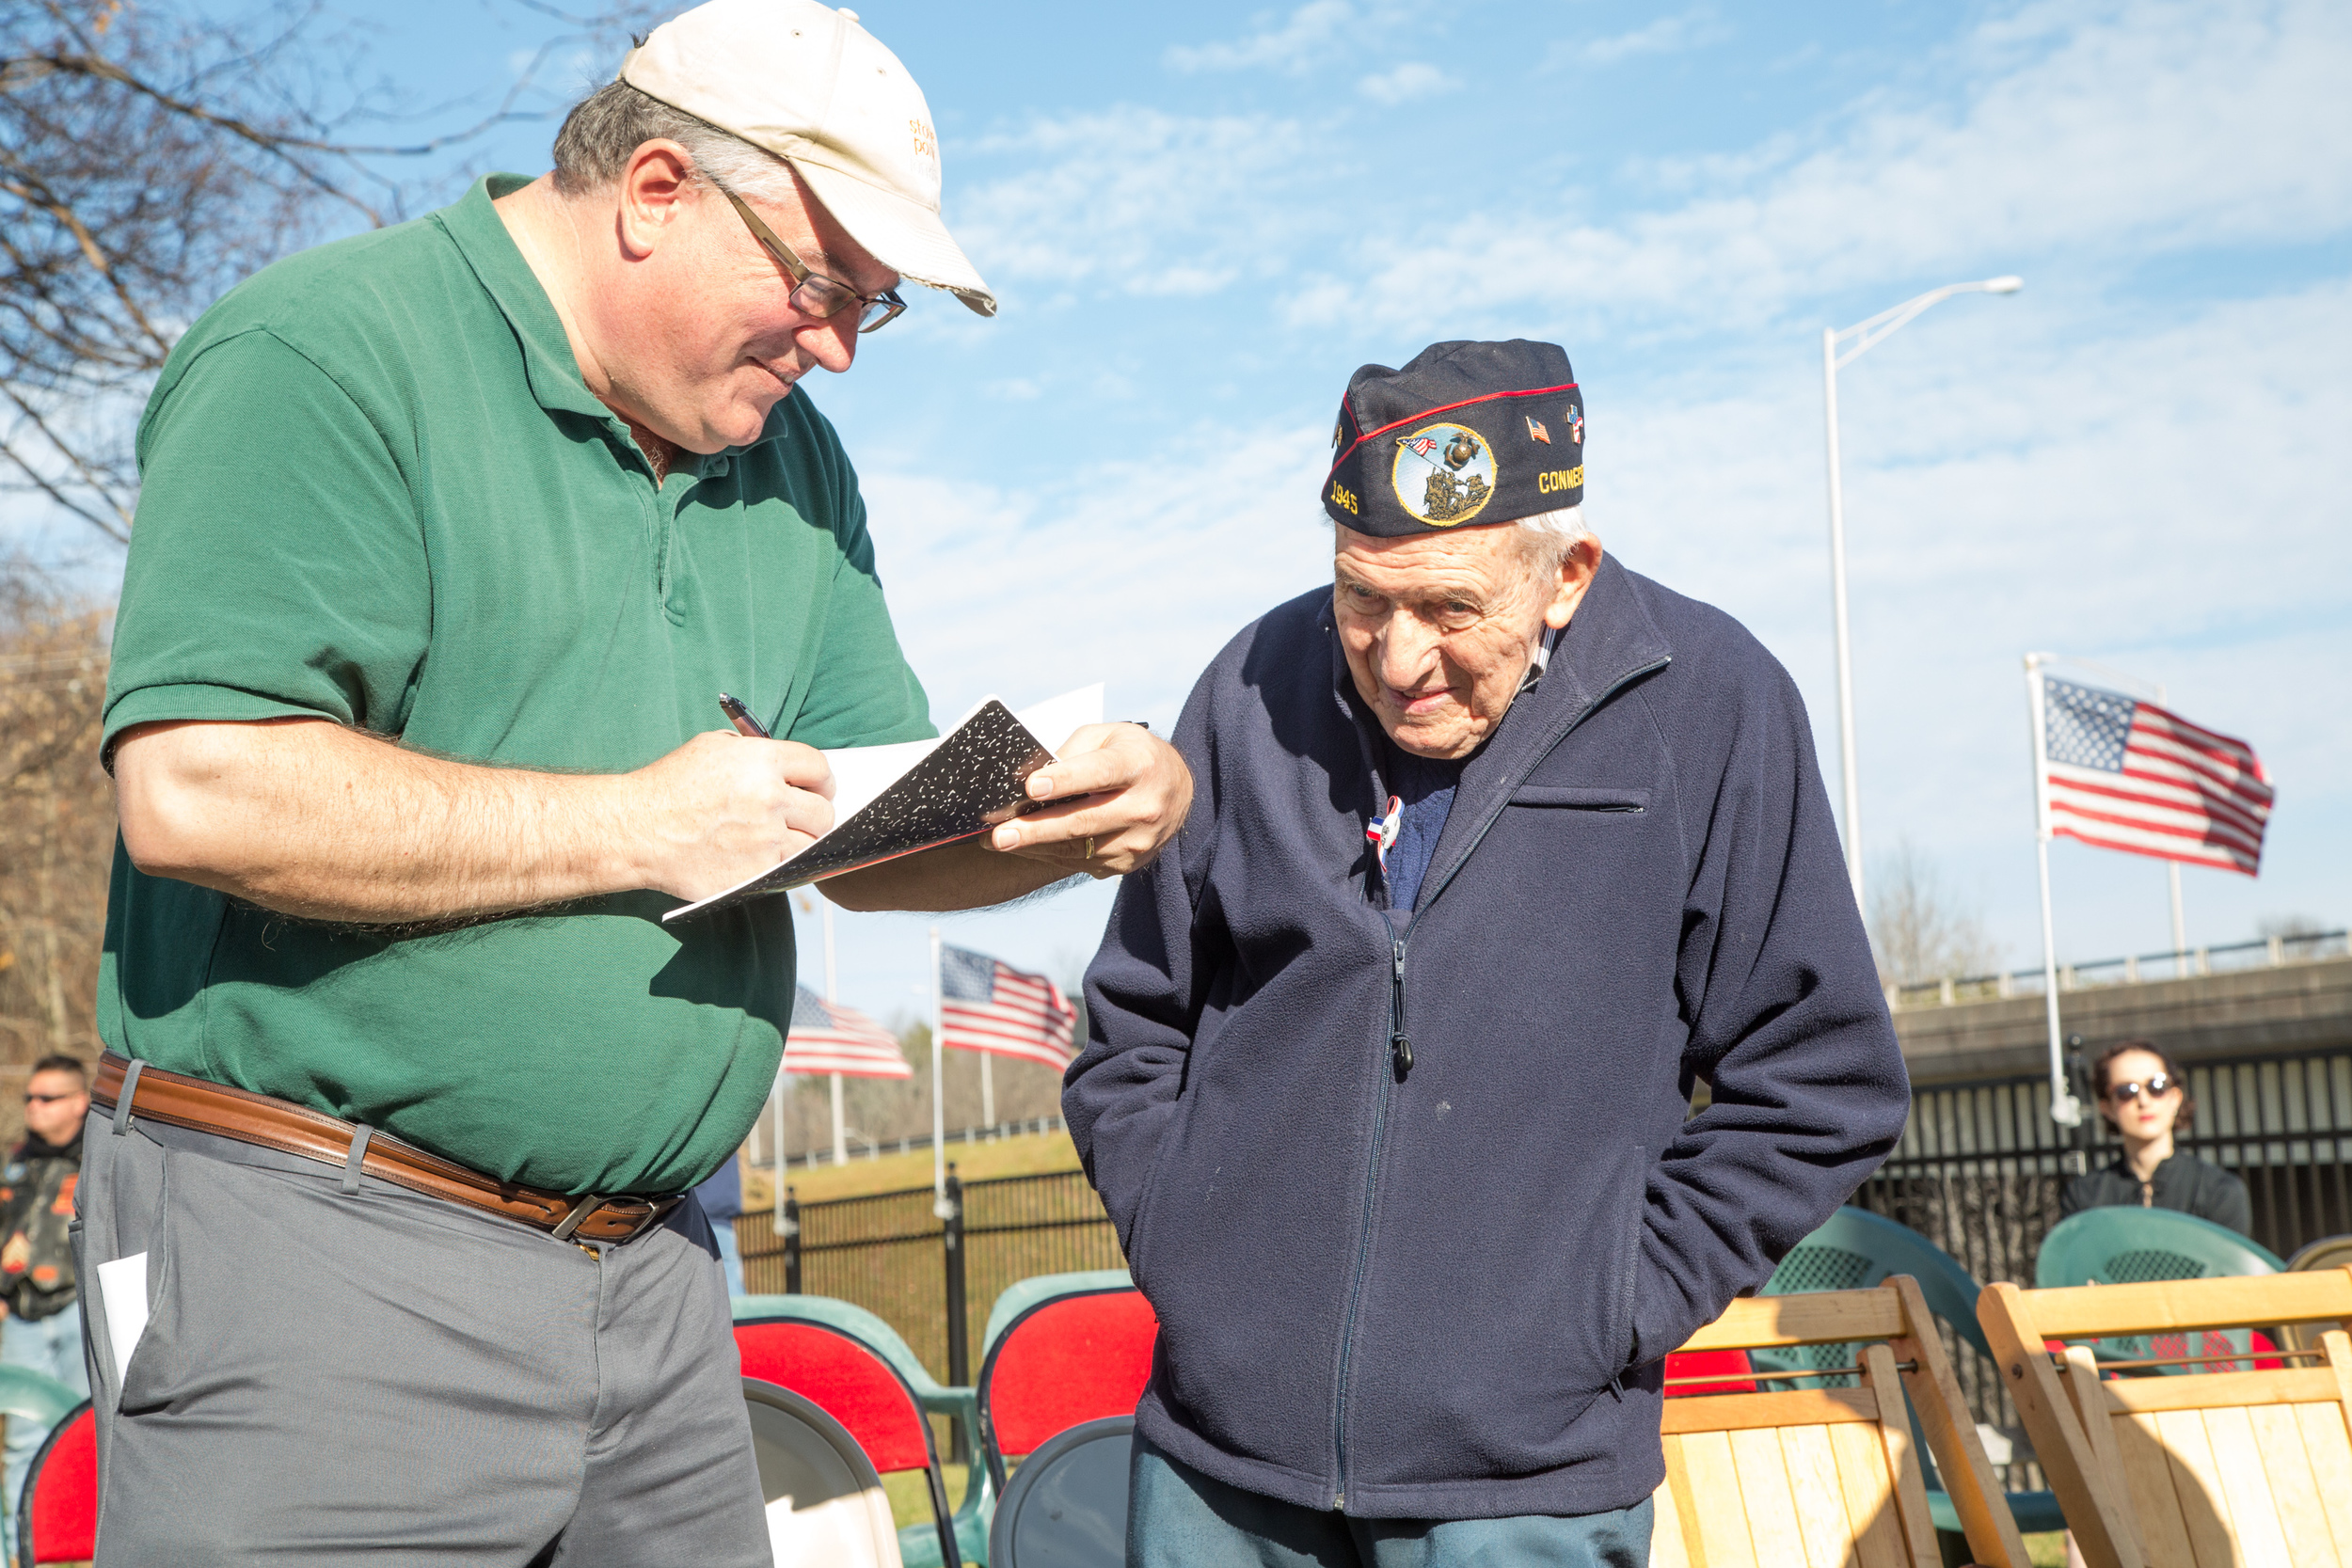 An Iwo Jima survivor speaks with a reporter at the New Britain Iwo Jima Memorial